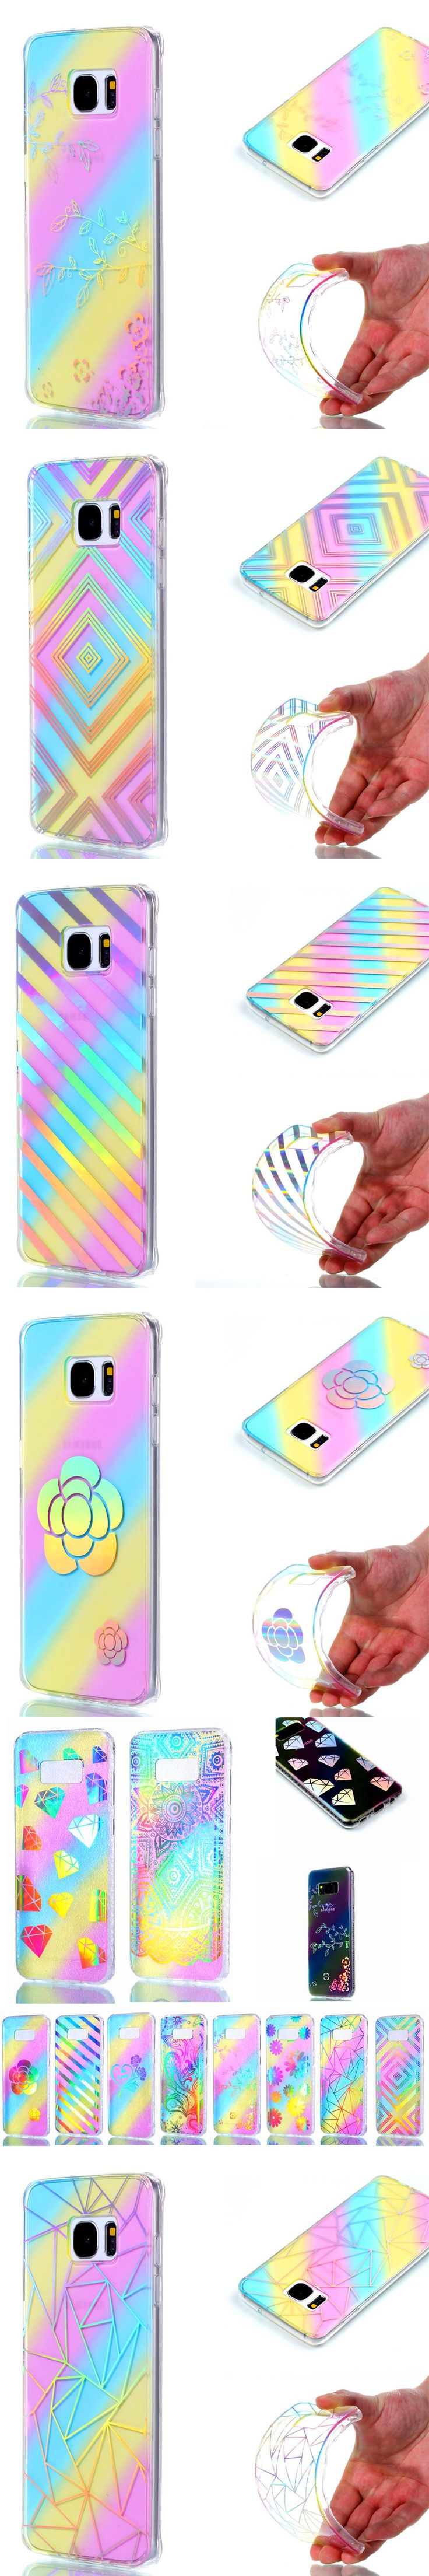 New Luxury Ultra Slim Lighting Gradient Rainbow Electroplating Soft TPU Phone Cases Cover For Samsung S7 edge S8 plus Capa